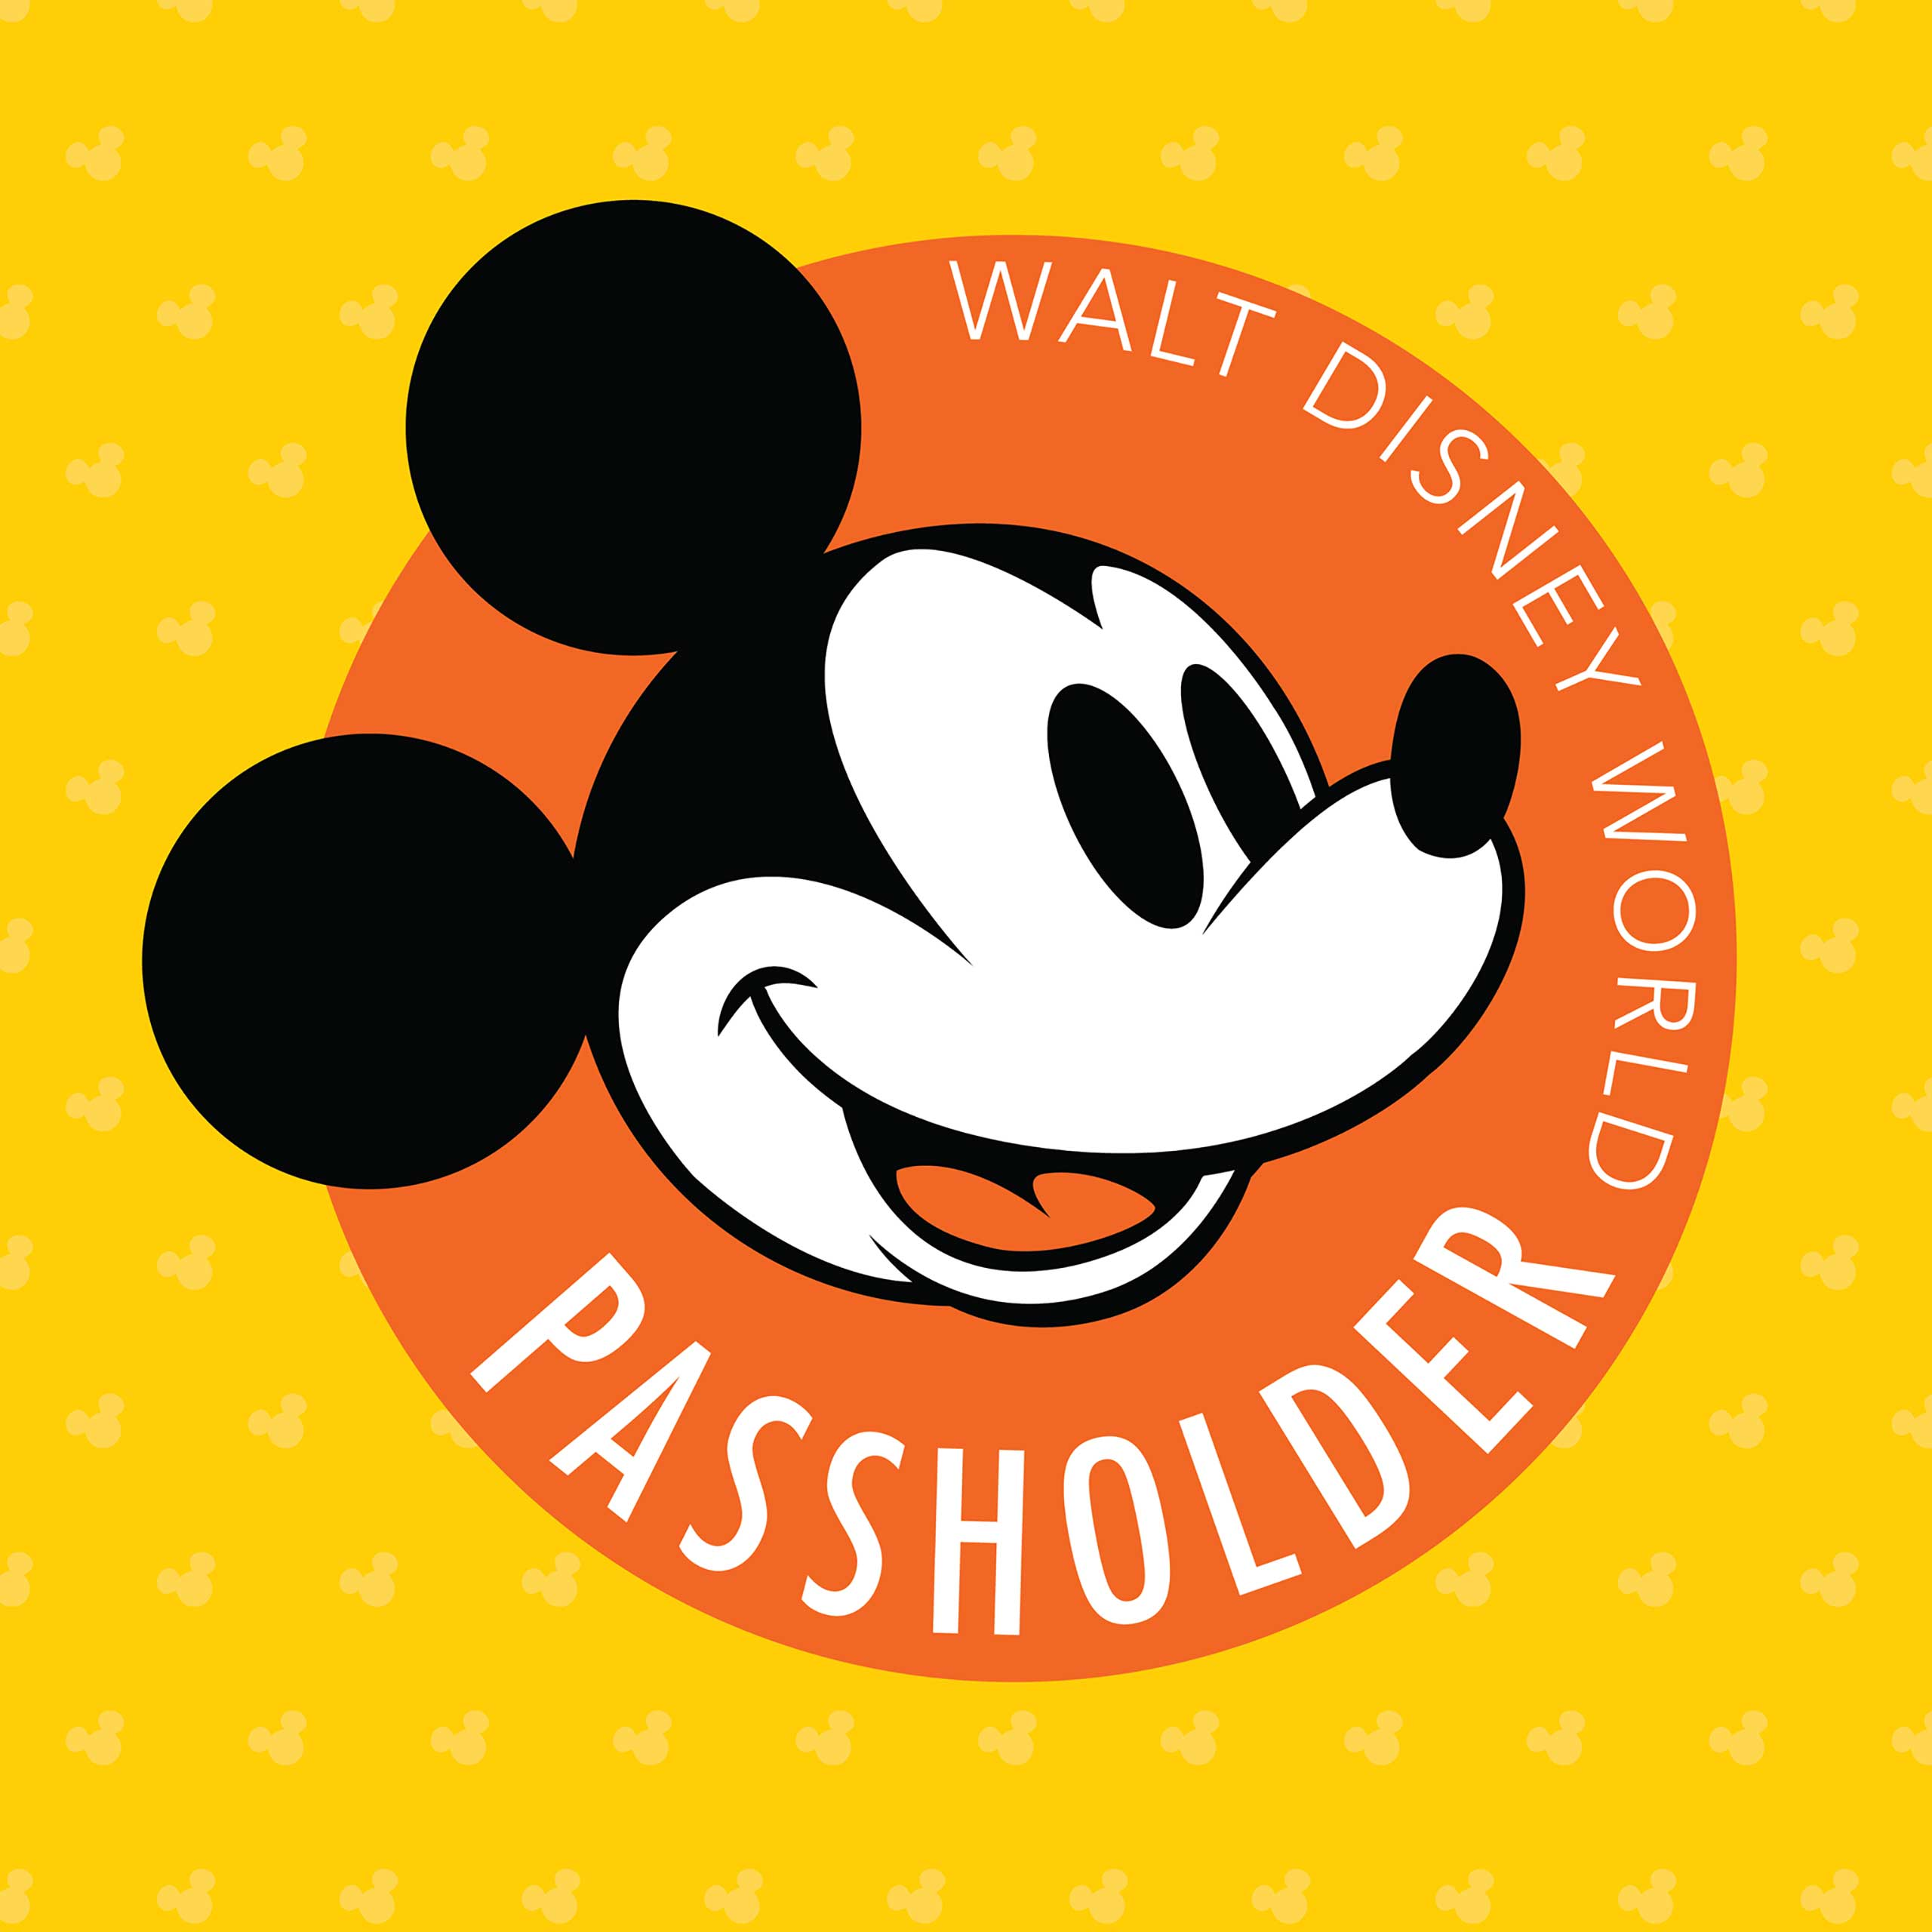 Walt Disney World Annual Passholder logo